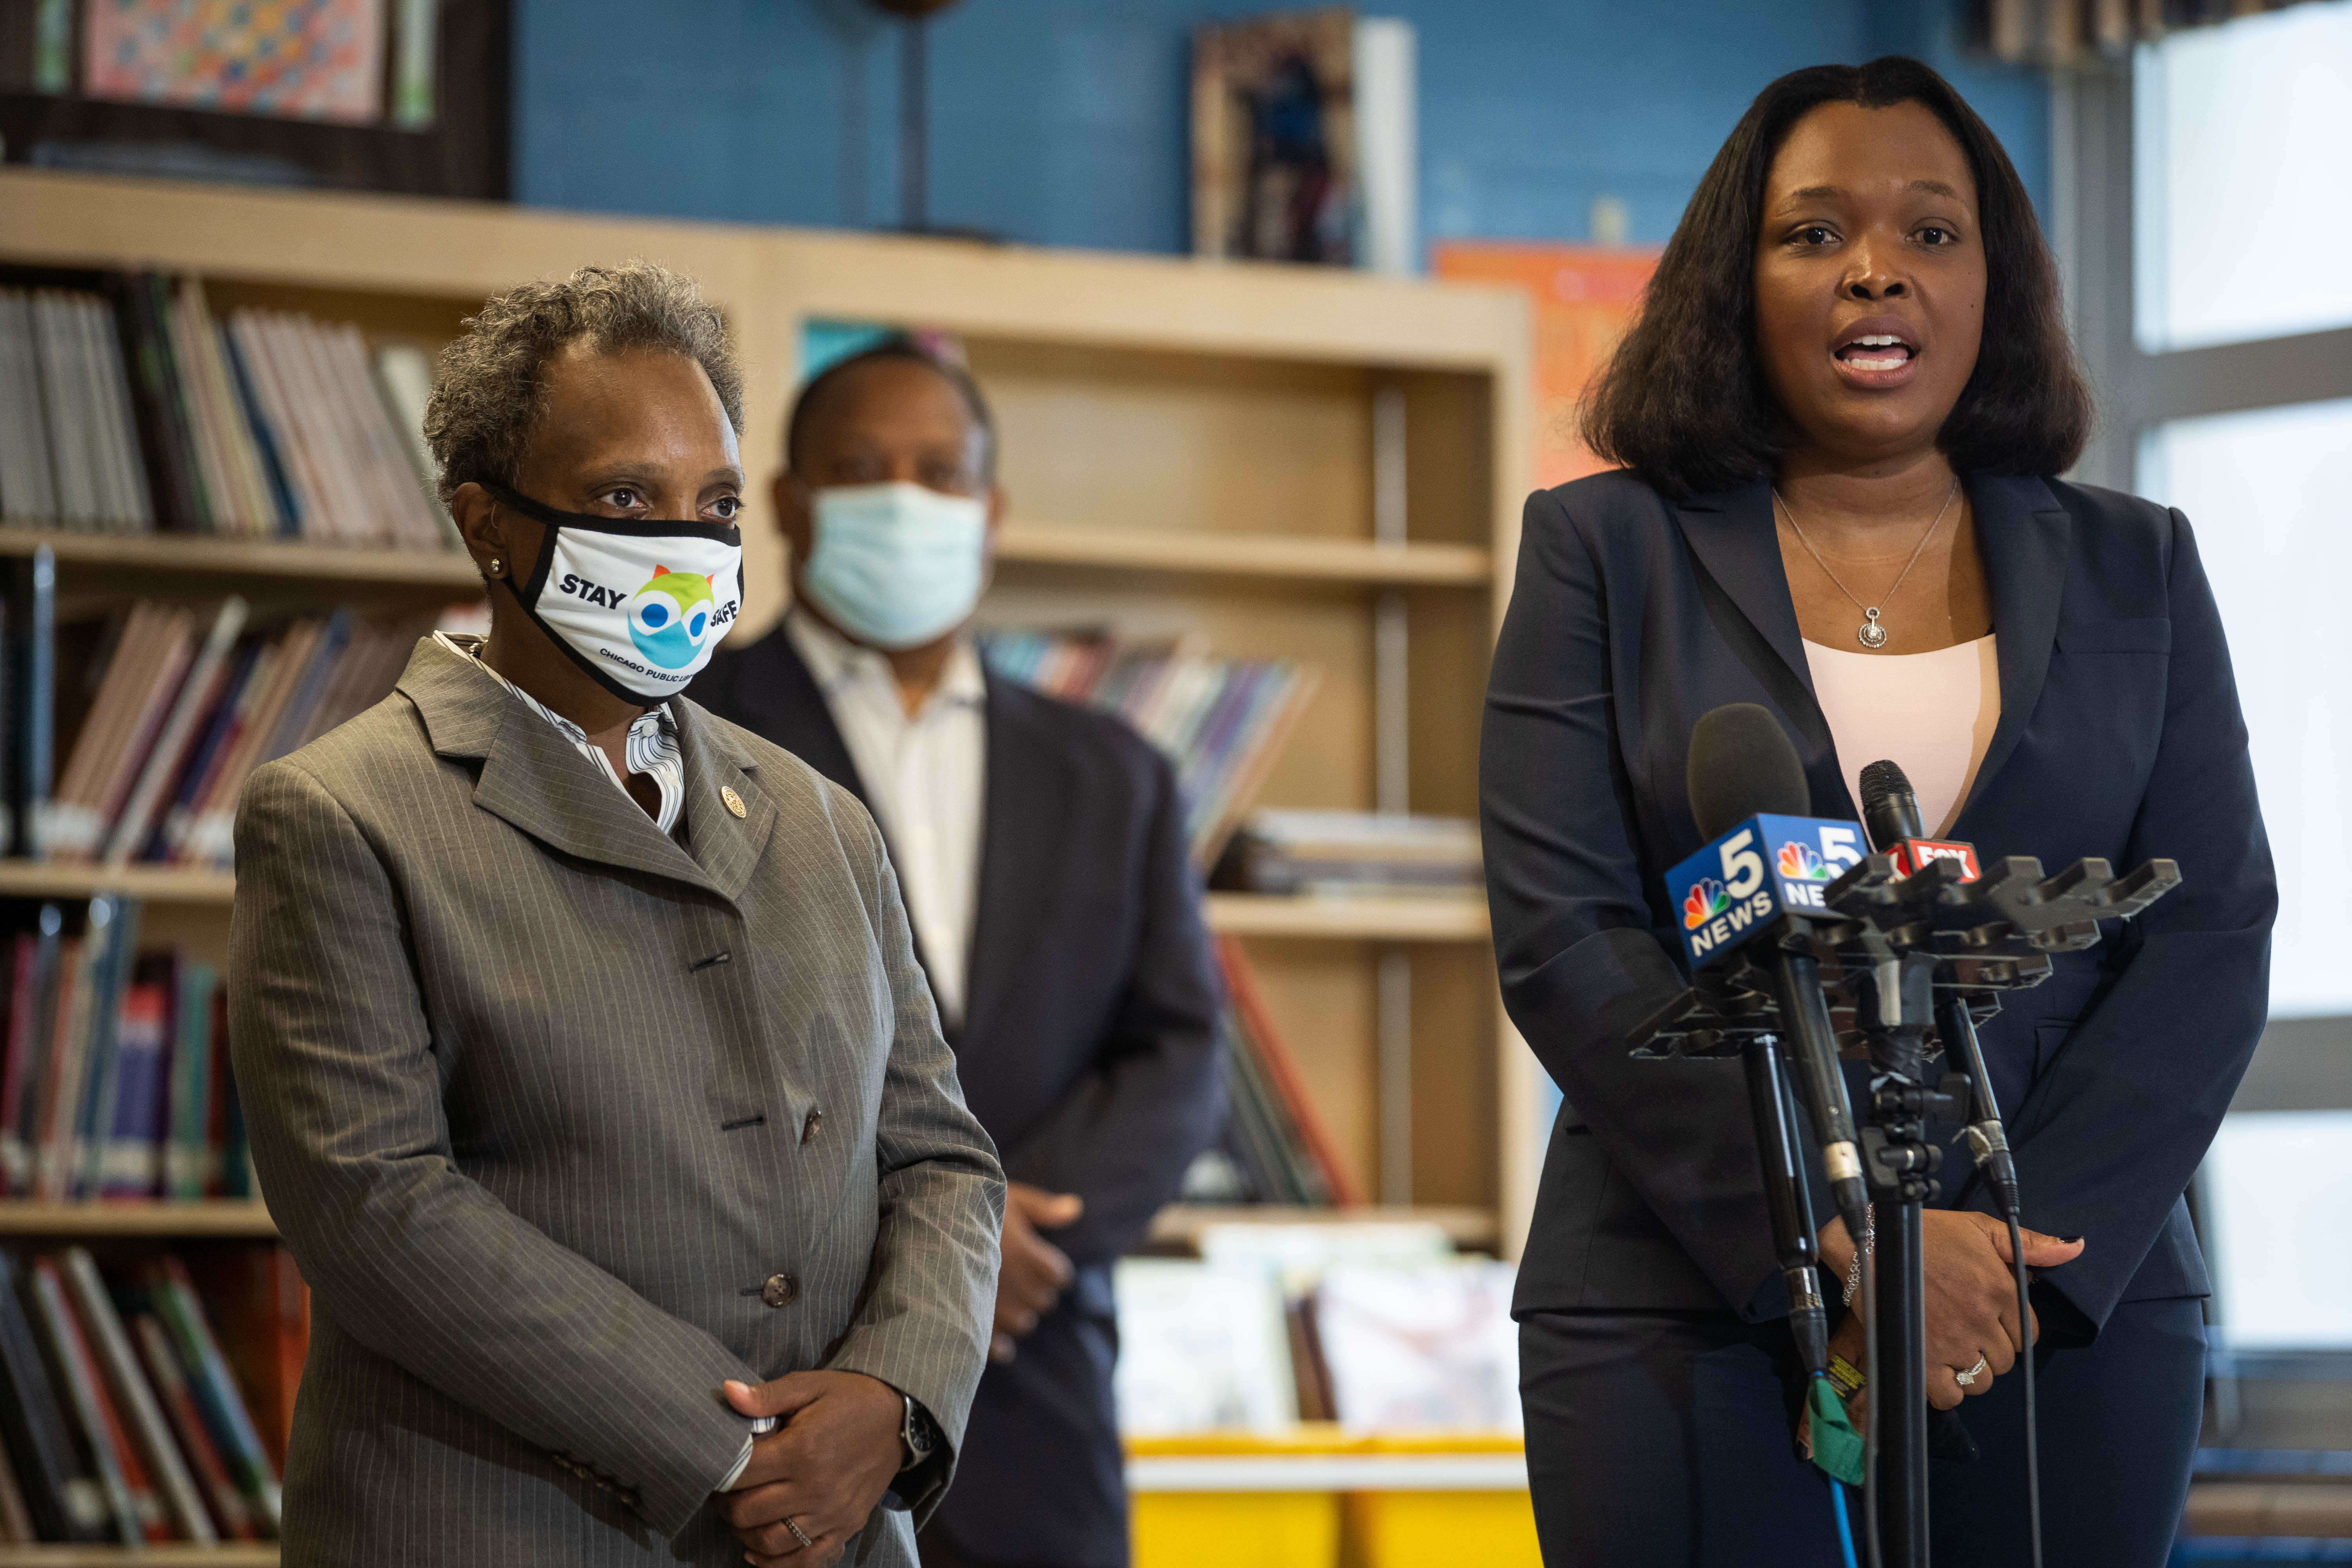 Chicago Public Schools CEO Dr. Janice Jackson speaks during a press conference on the first day of the semester, which has featured all remote learning so far. The Chicago Teachers Union filed an unfair labor complaint over the district's plan to start reopening next month.